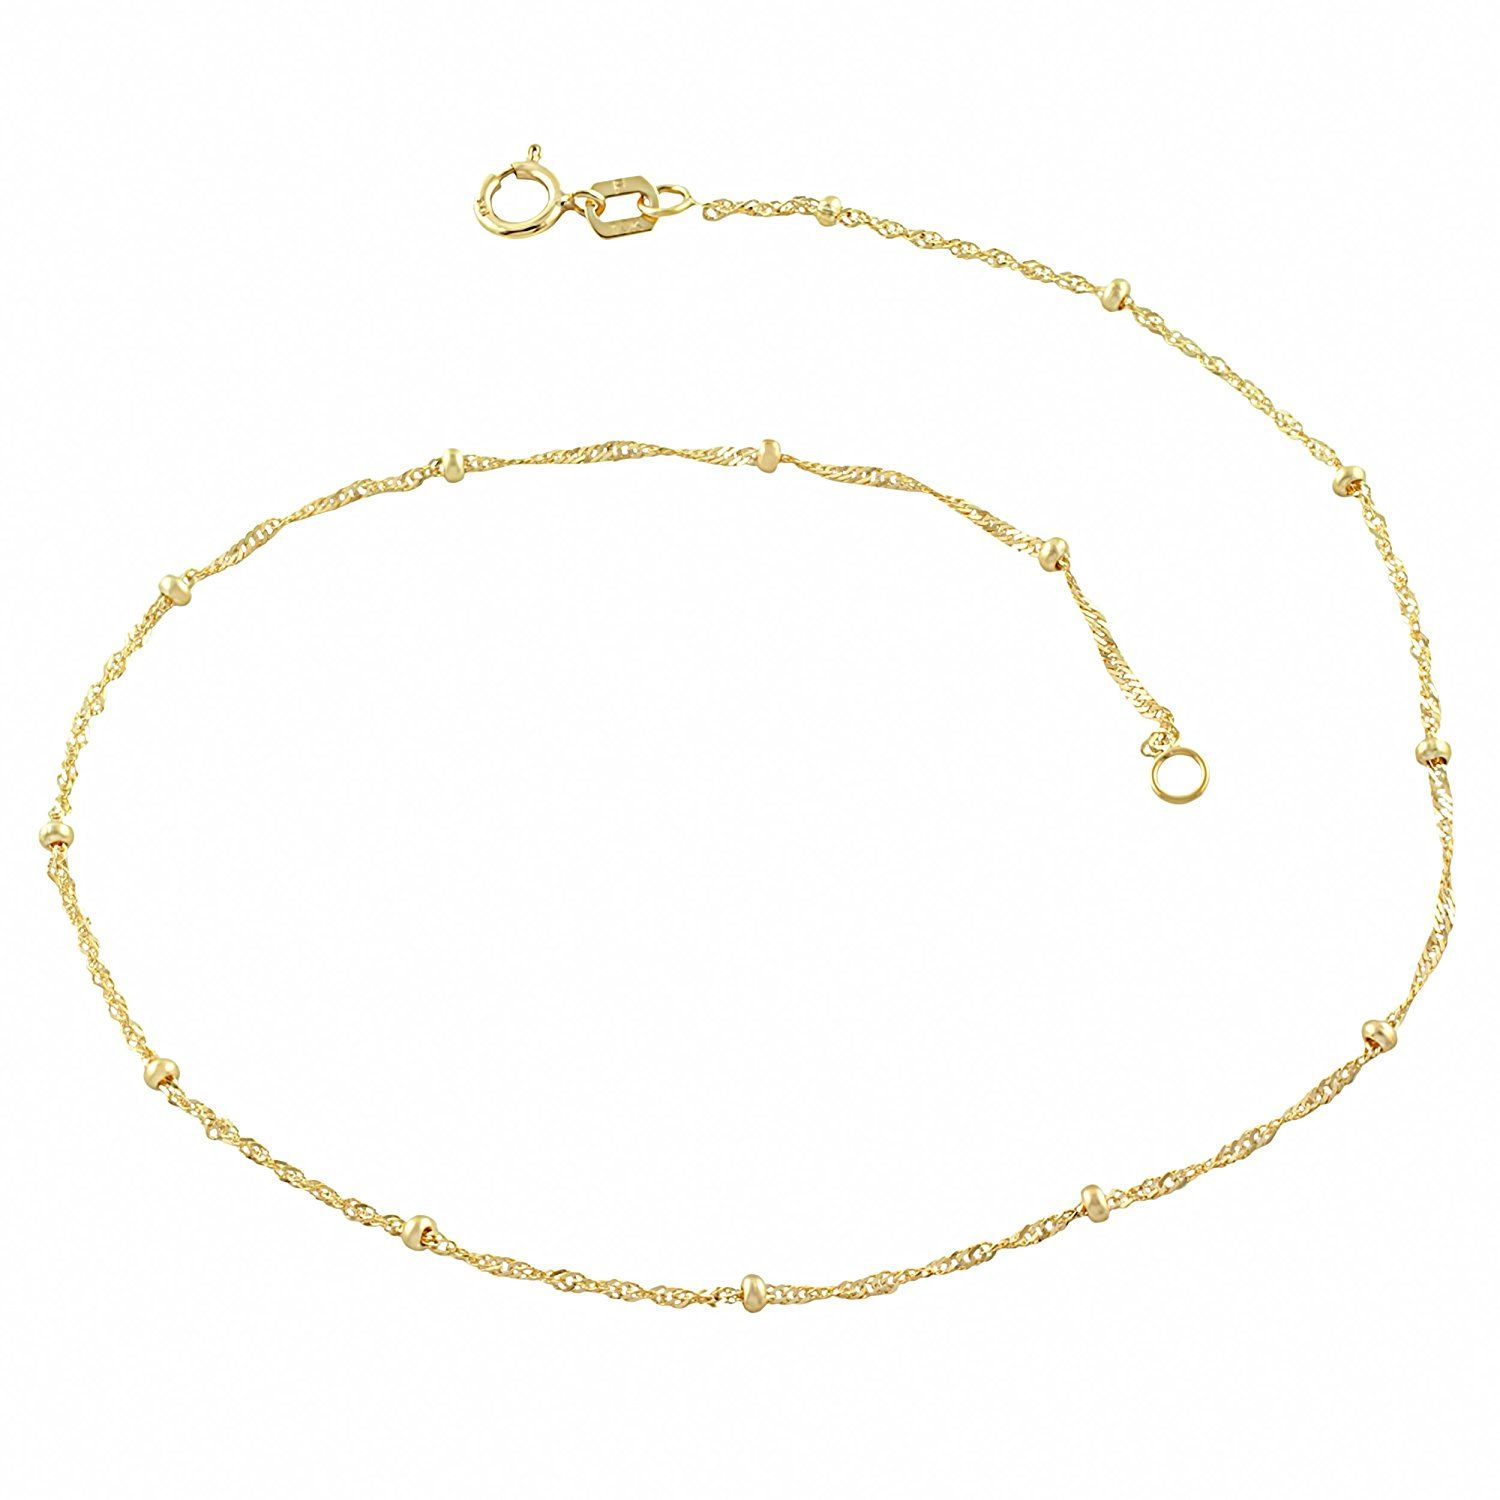 inch gold anklet today jewelry free saturn fremada product watches singapore mm shipping karat overstock yellow